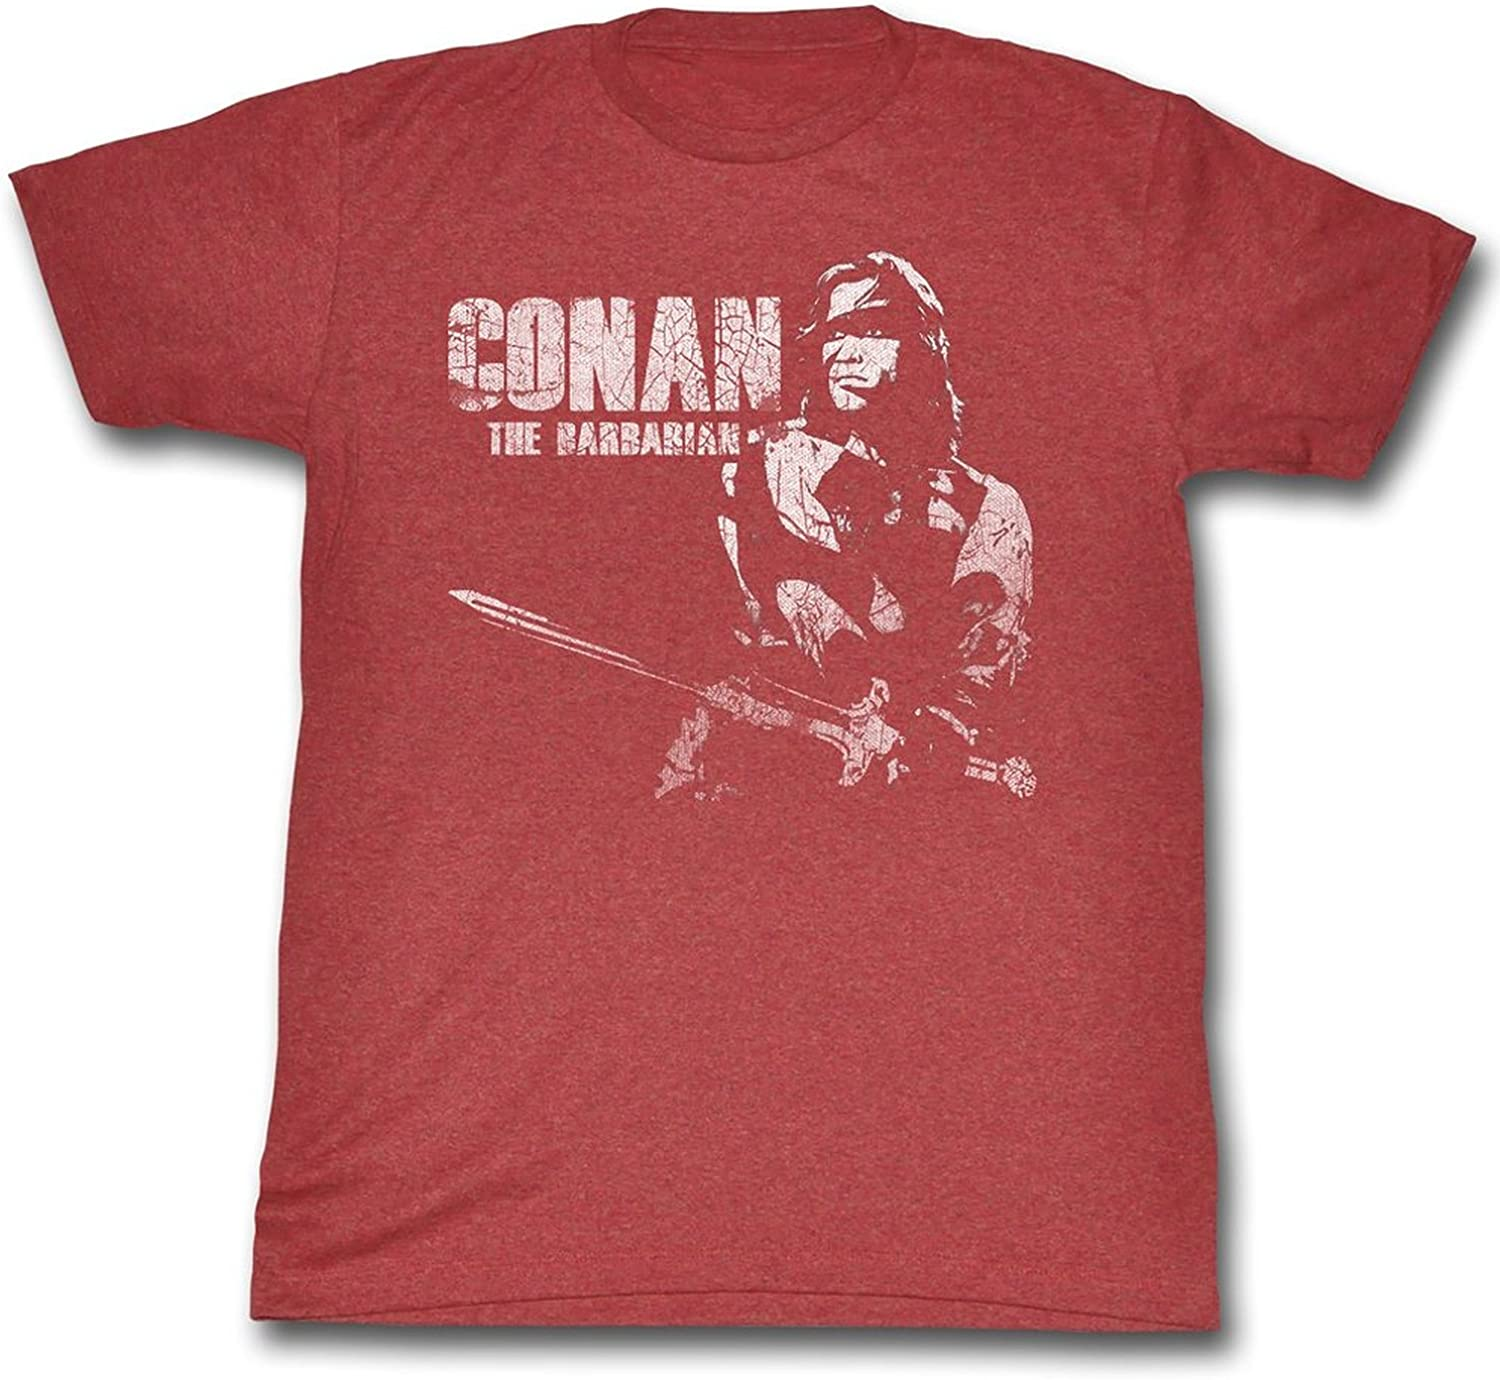 Conan Shirts The Barbarian Adult Heather Red Tee T-Shirt